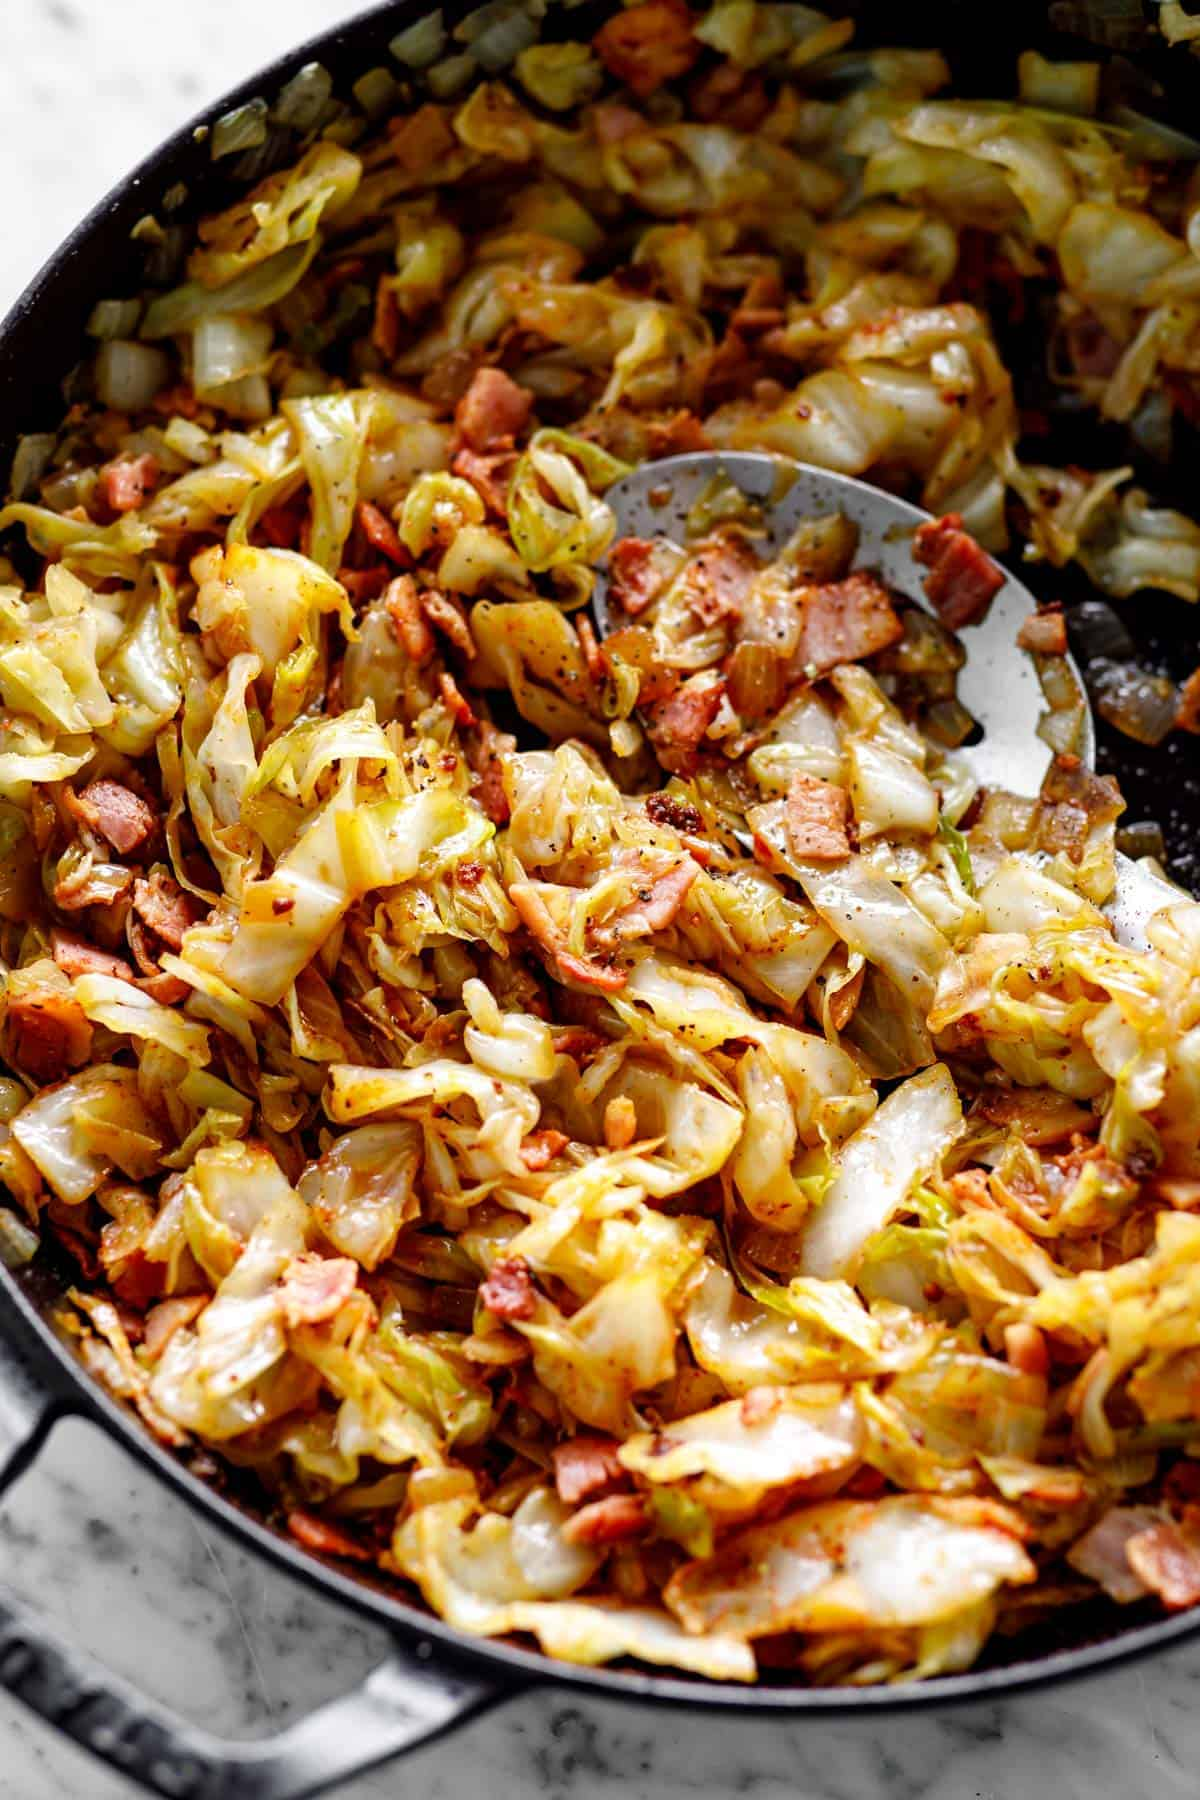 Fried Cabbage with bacon in a Staub cast-iron skillet | cafedelites.com